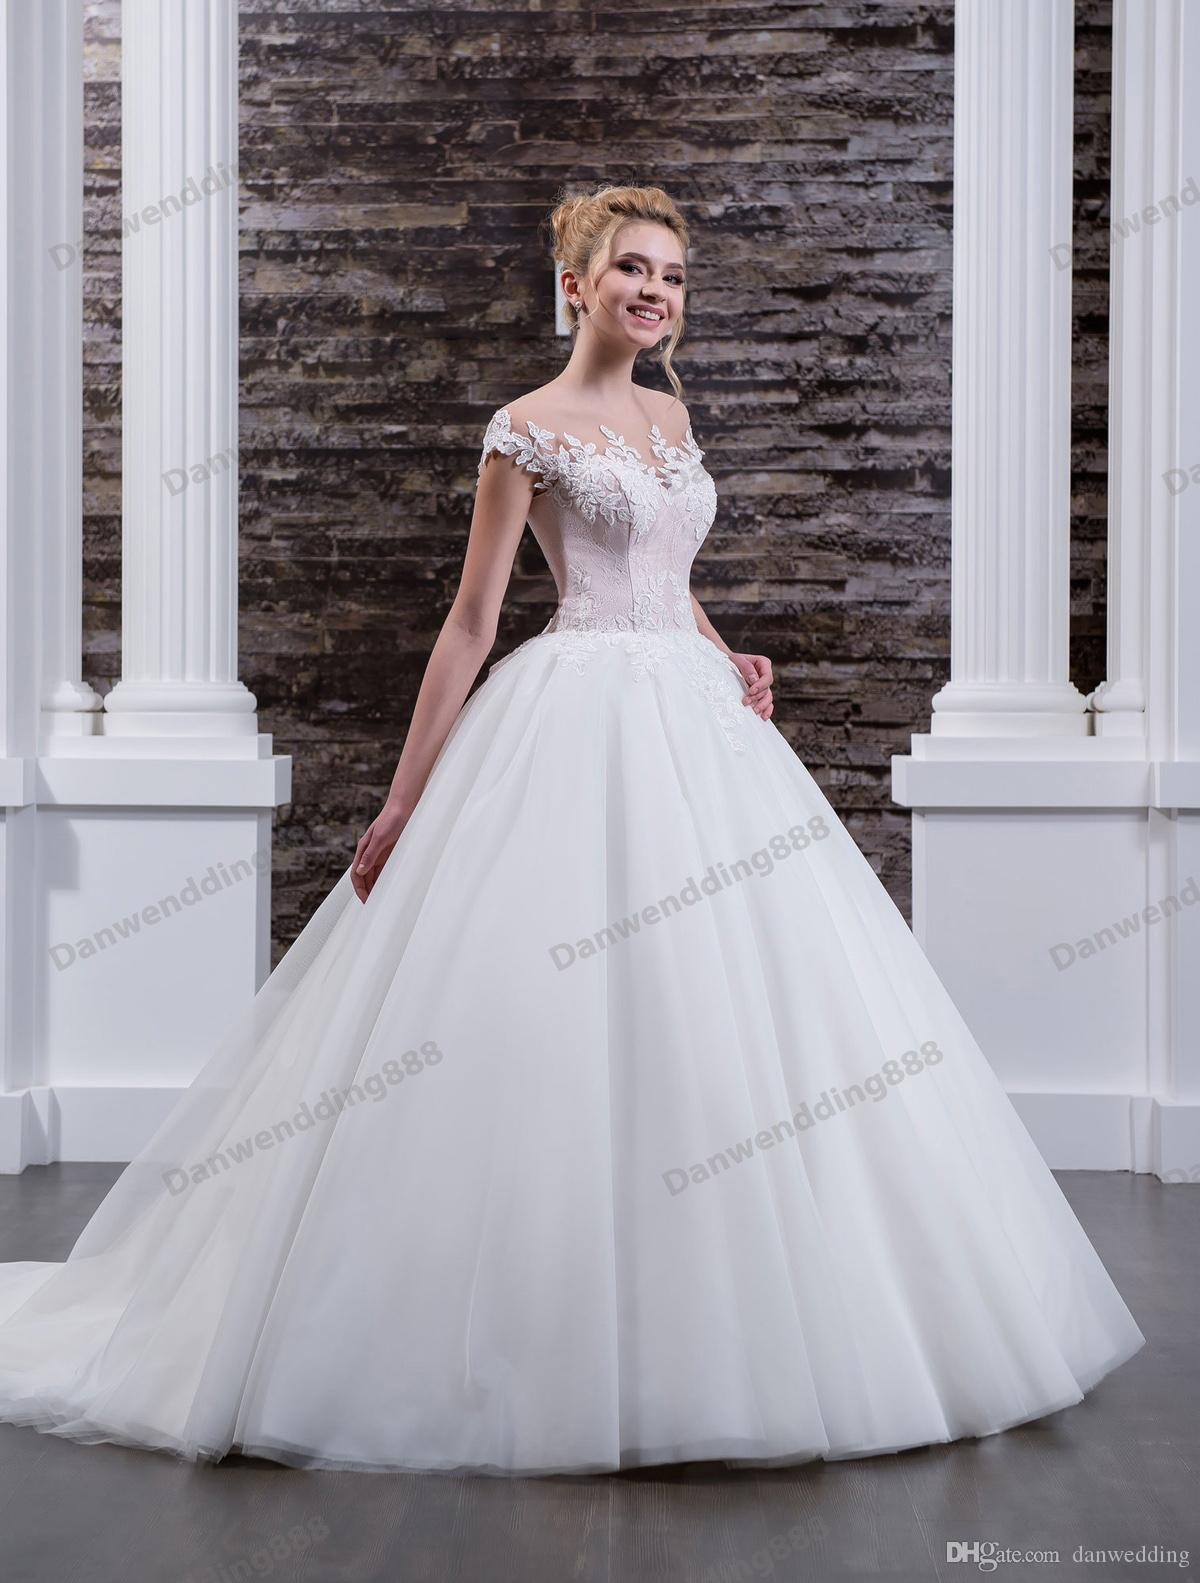 Grace Bianco / Pink Tulle Scoop Applique Abito da sposa Abiti da sposa Abiti da sposa Abiti da sposa Abiti da sposa Abiti personalizzati Dimensione 2-16 ZW612227